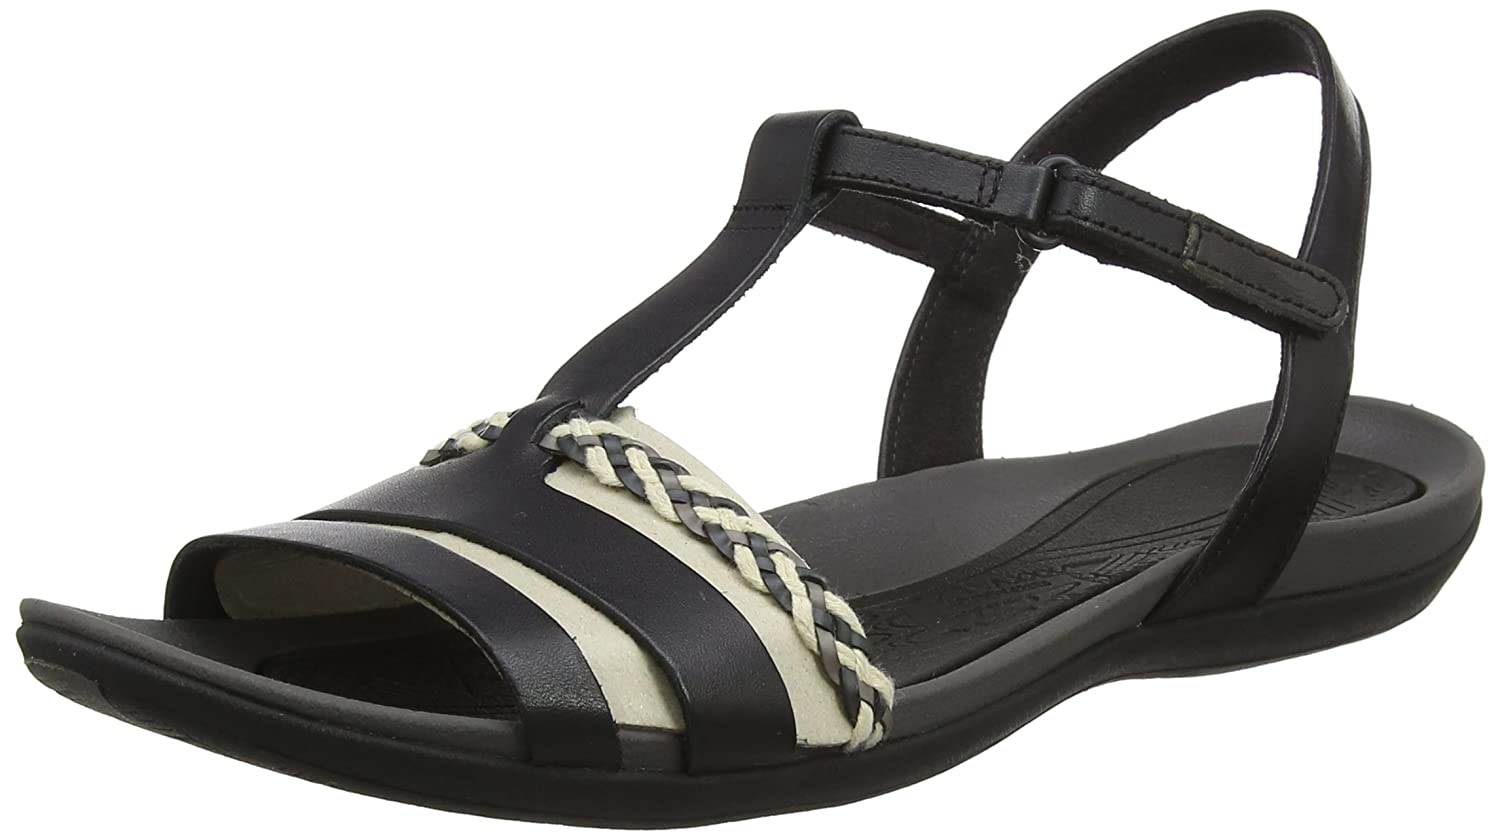 Clarks Tealite Grace, Salomés Tealite Femme Noir (Black Grace, Leather Noir -) d4ff99f - shopssong.space